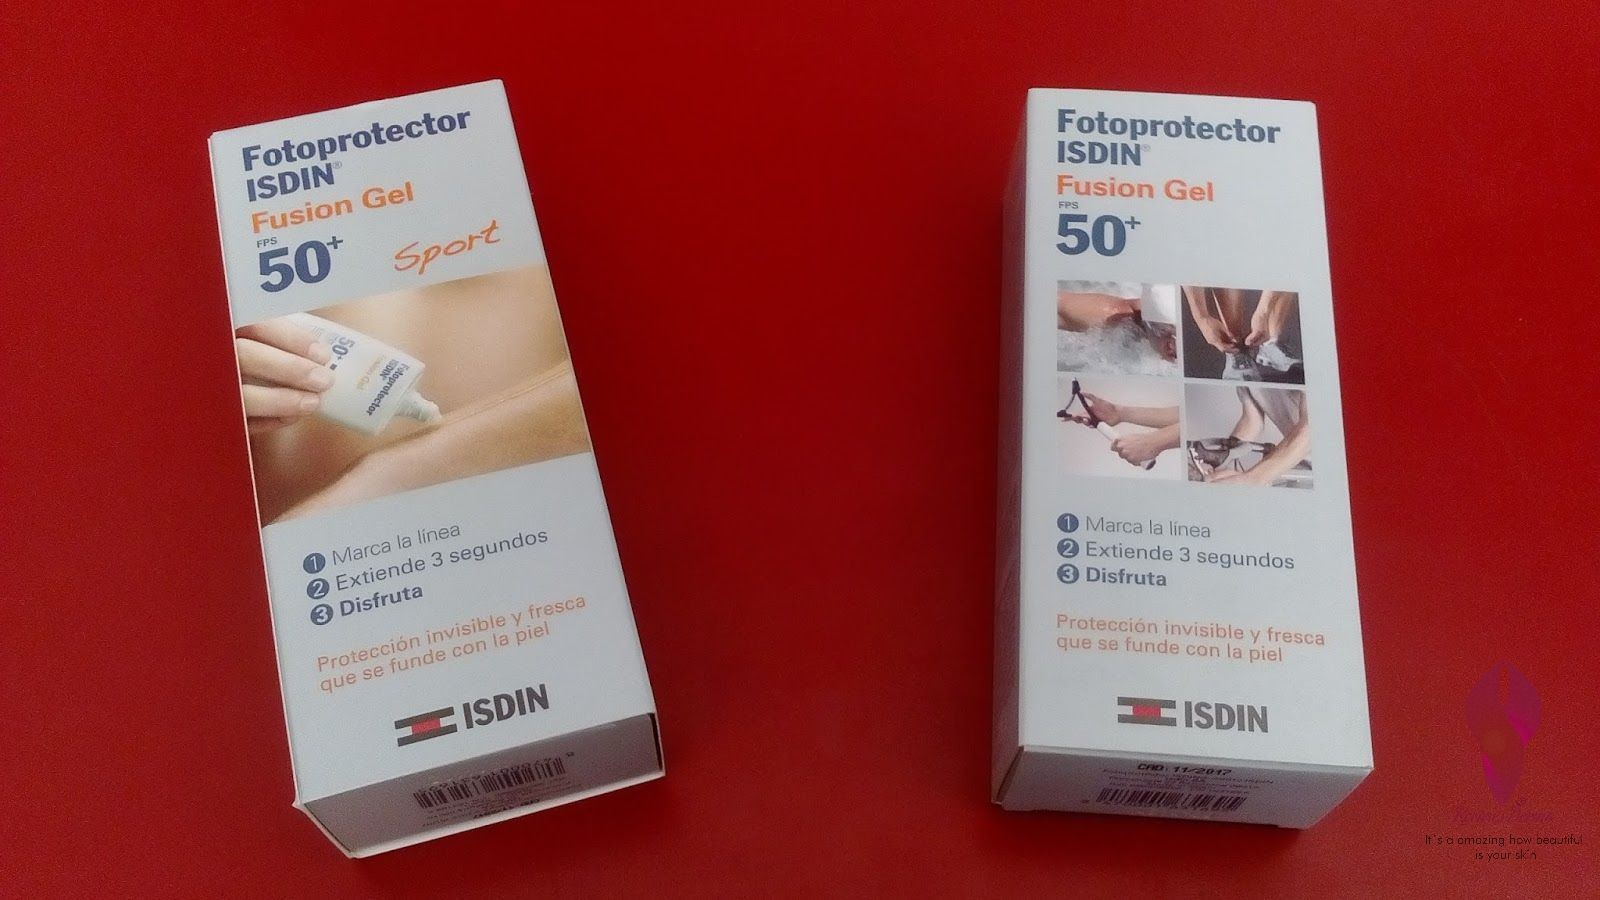 Fotoprotector Isdin Fusion Gel